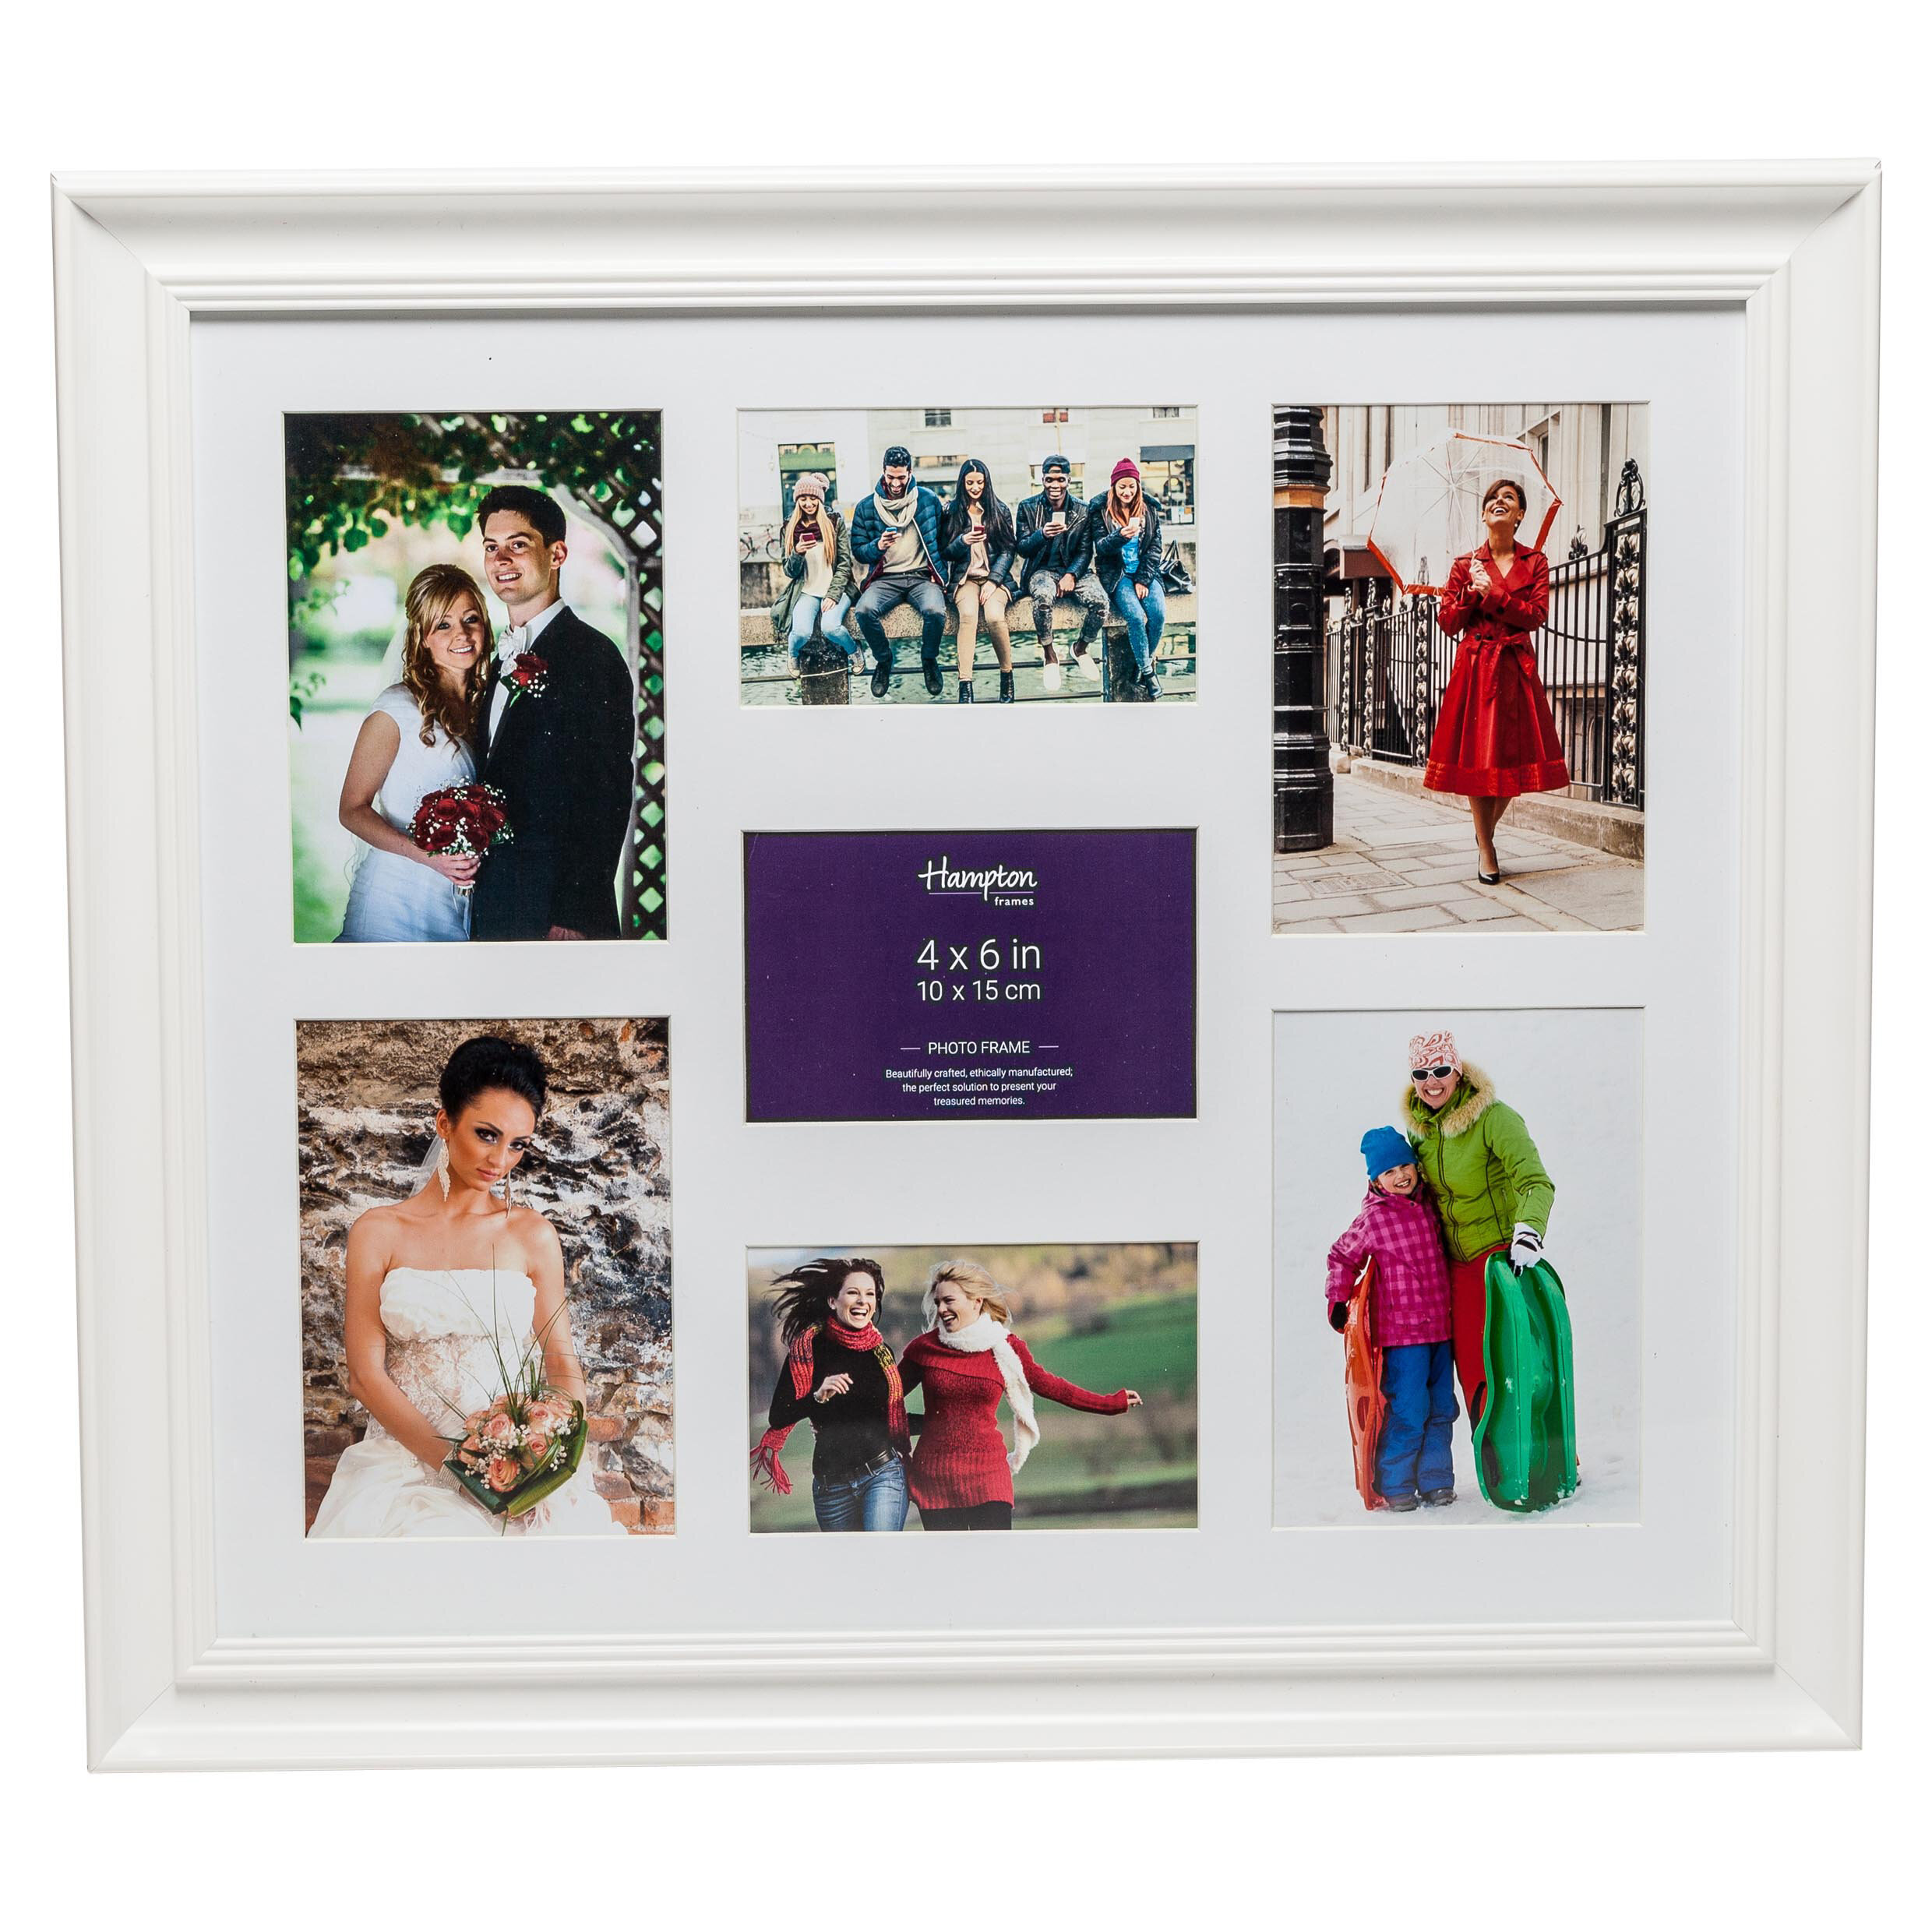 HamptonFrames | Wayfair.de